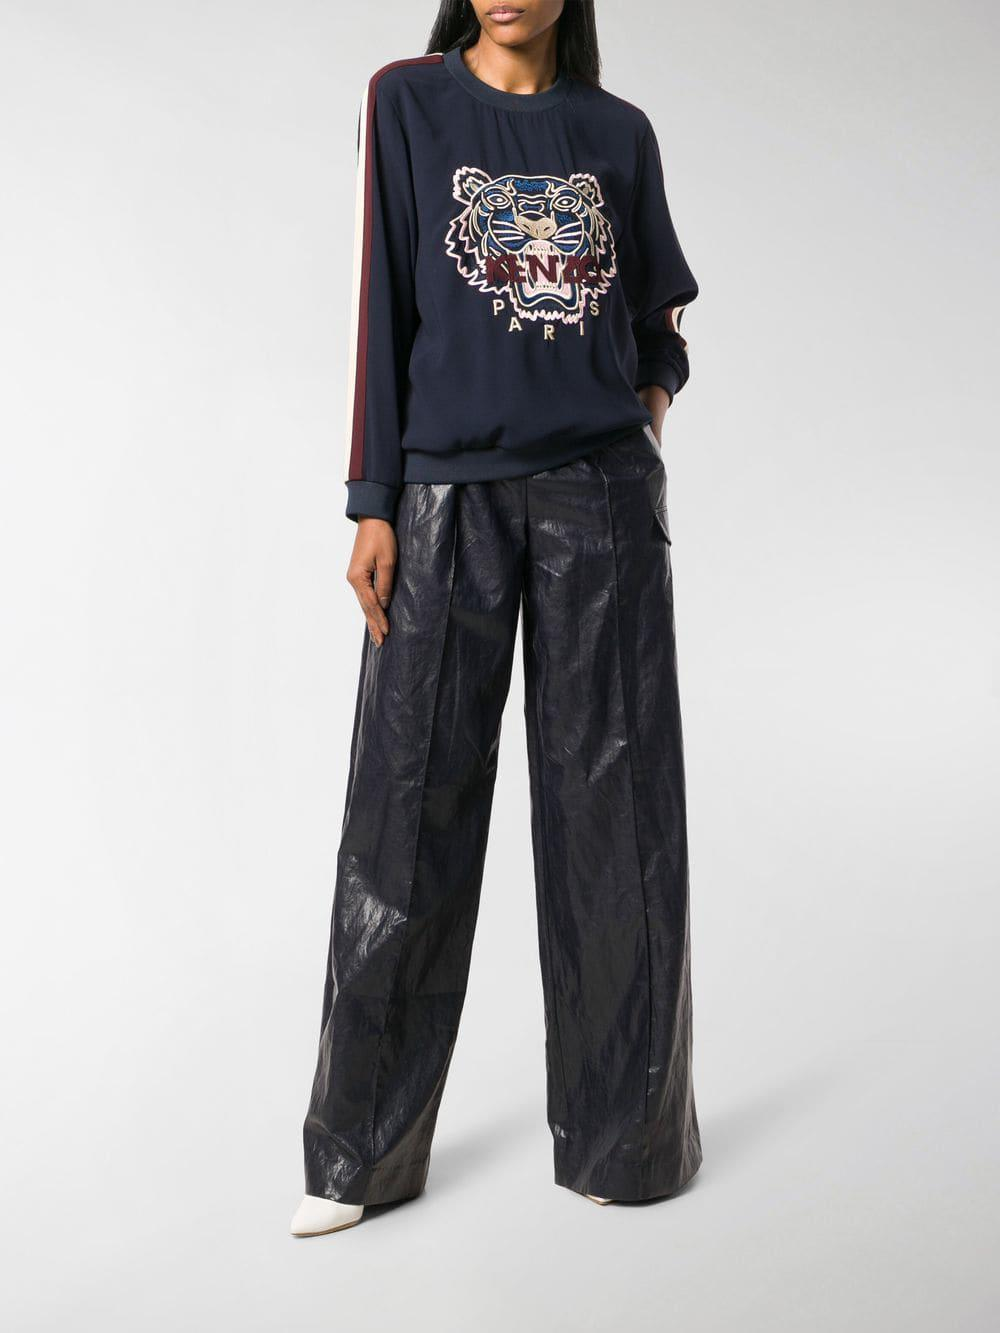 73925a1d1e08 KENZO Tiger Sweatshirt in Blue - Save 50.0% - Lyst